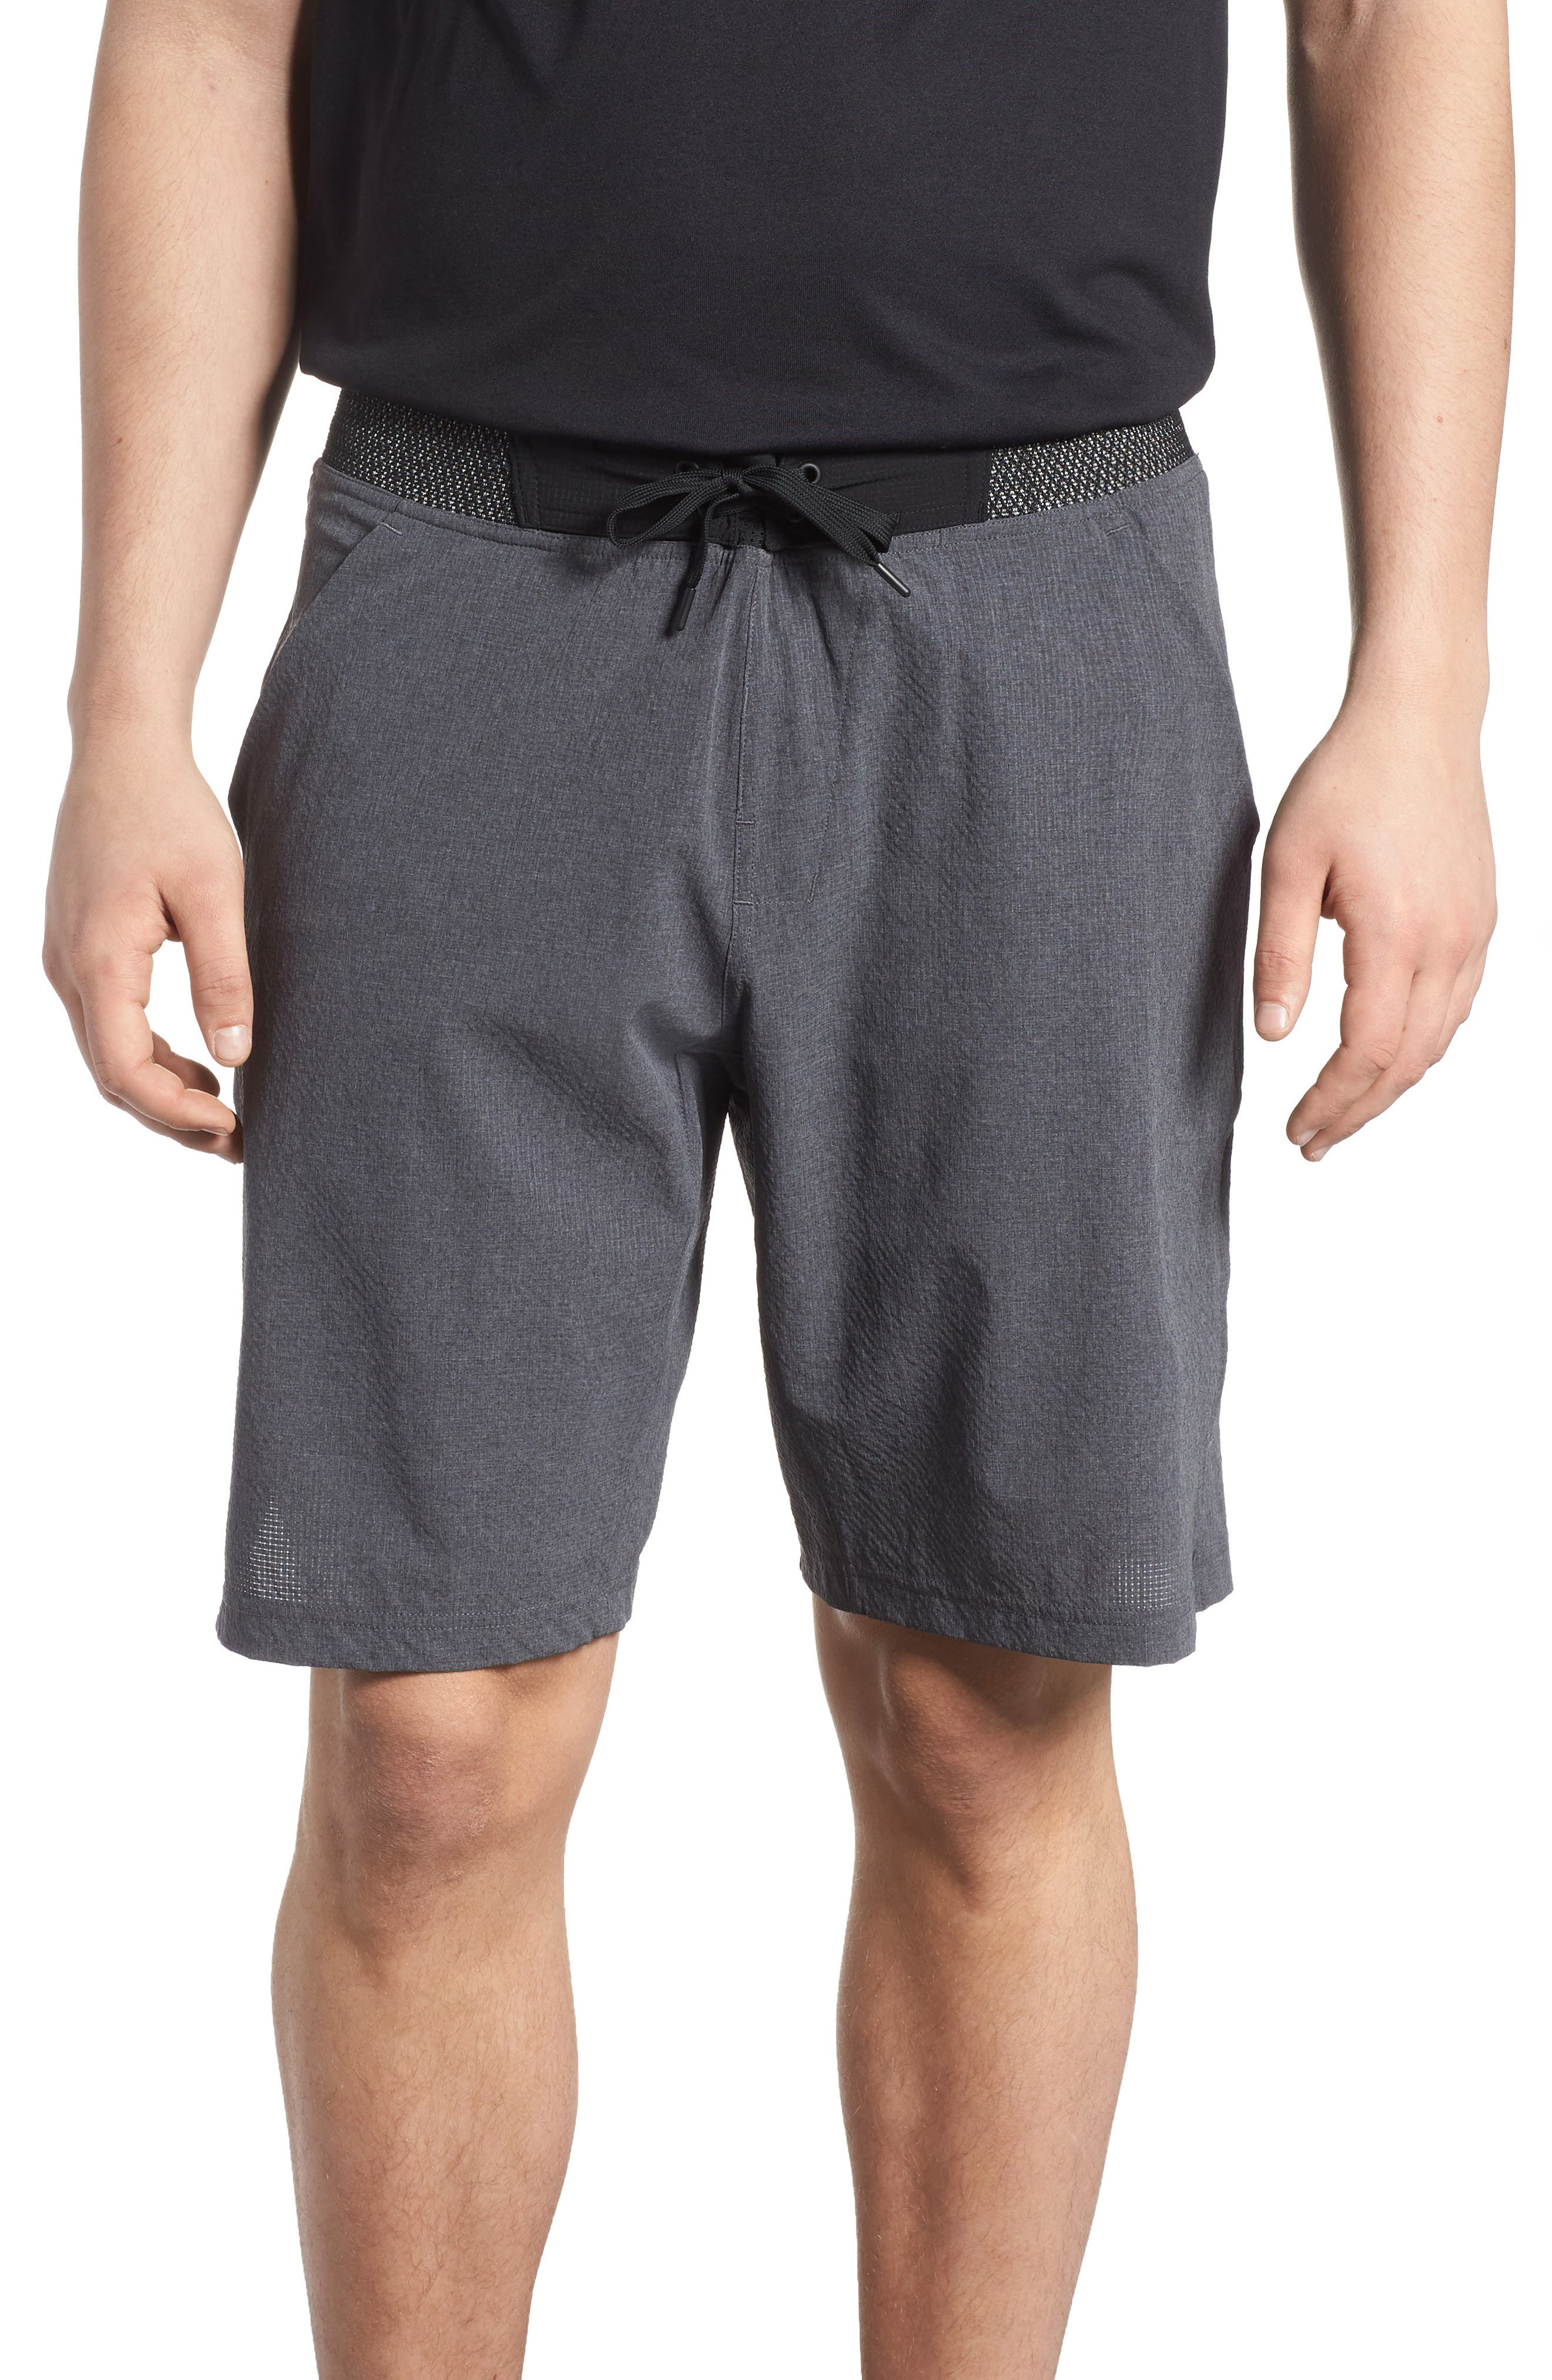 Epic Knit Shorts,                         Main,                         color, Dark Grey Heather